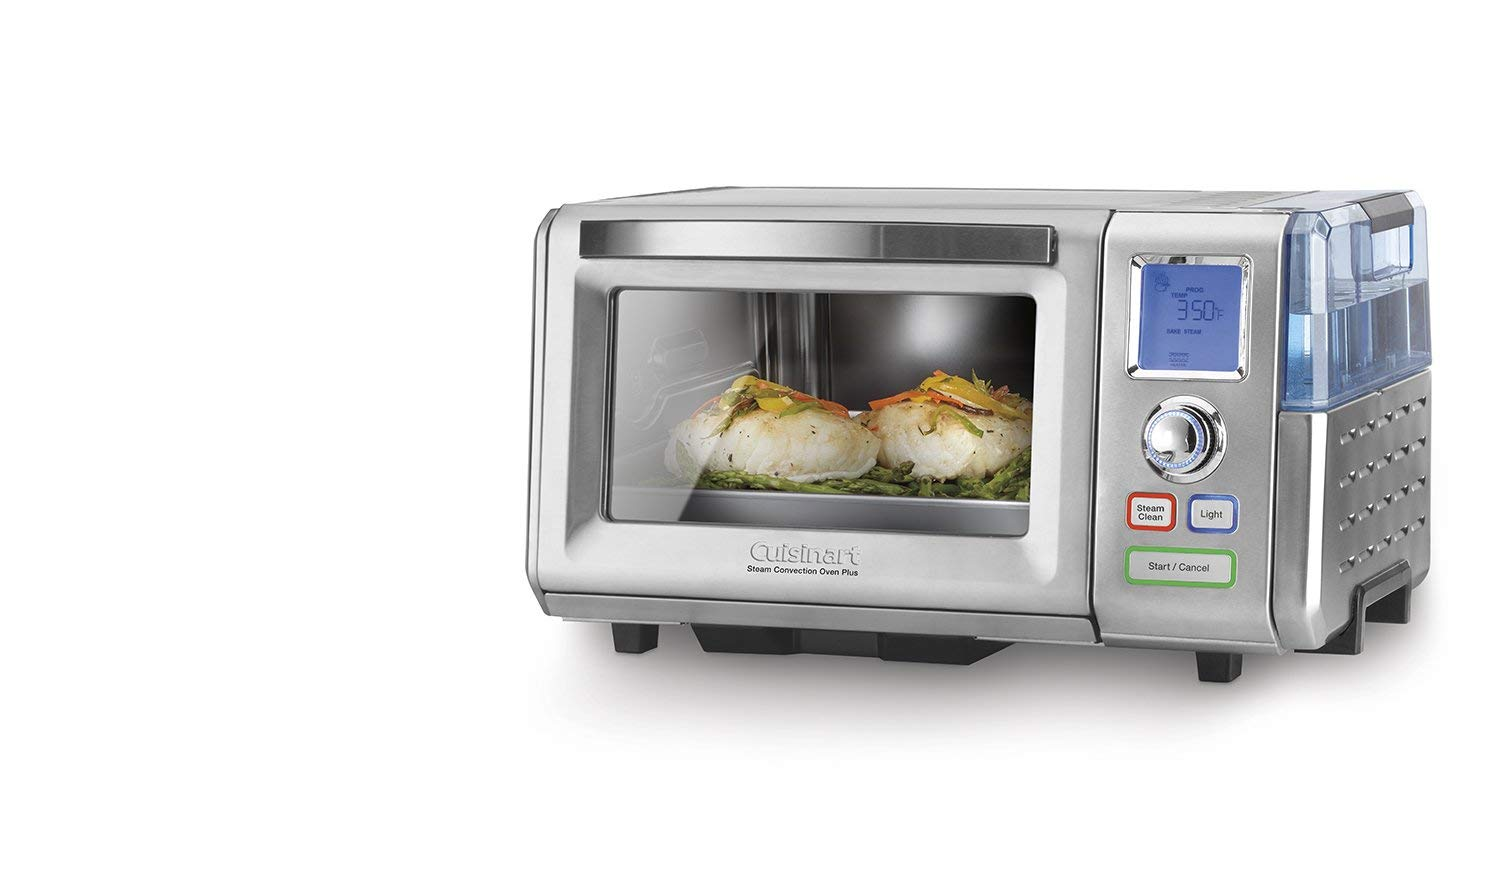 Review of Cuisinart CSO-300N1 Steam & Convection Oven, Stainless Steel